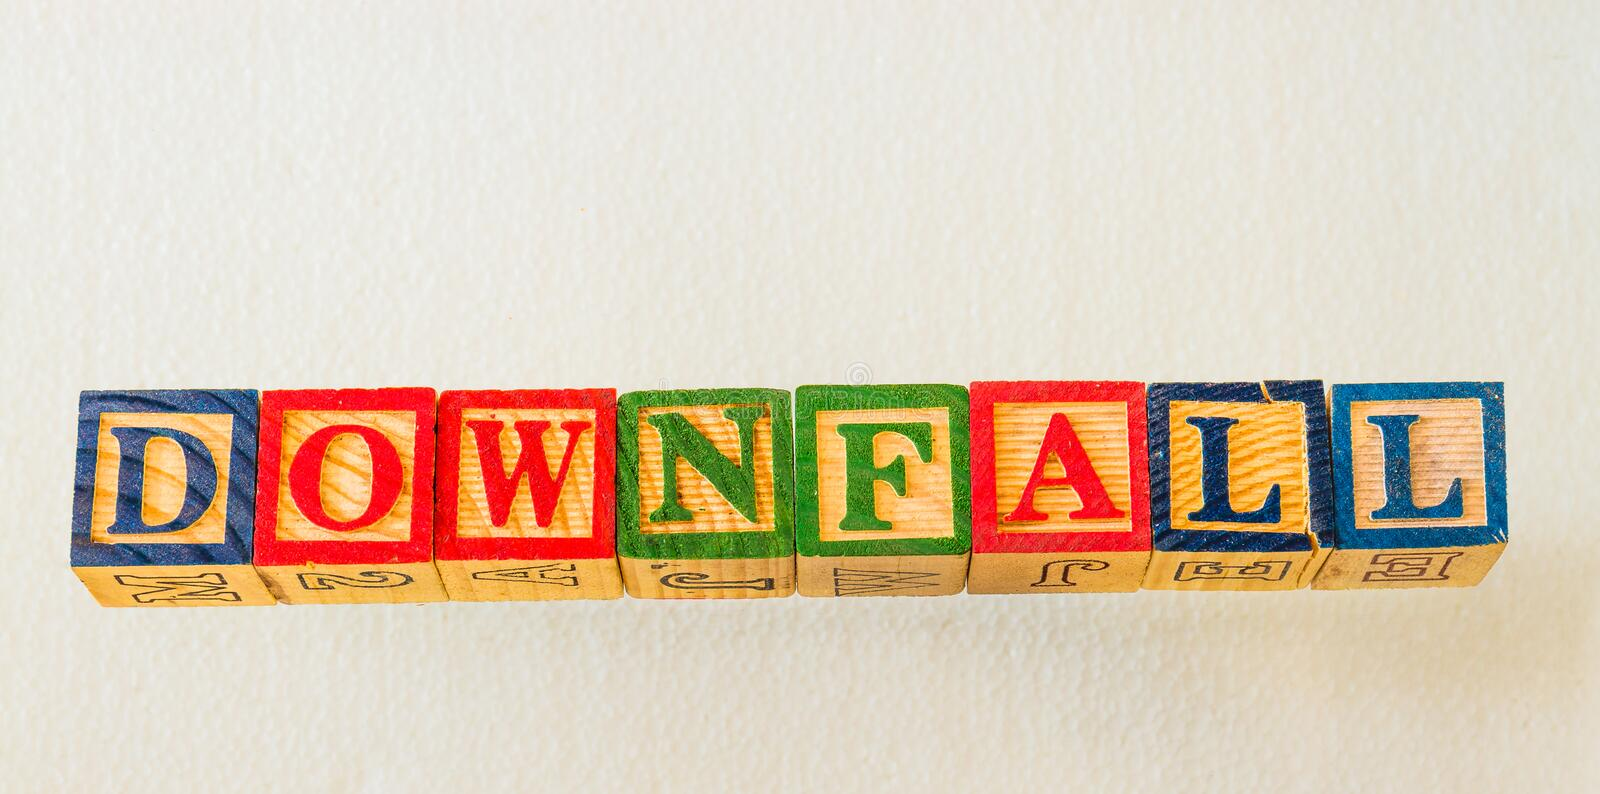 The term downfall visually displayed. On a white background using colorful wooden blocks image with copy space in landscape format stock photos